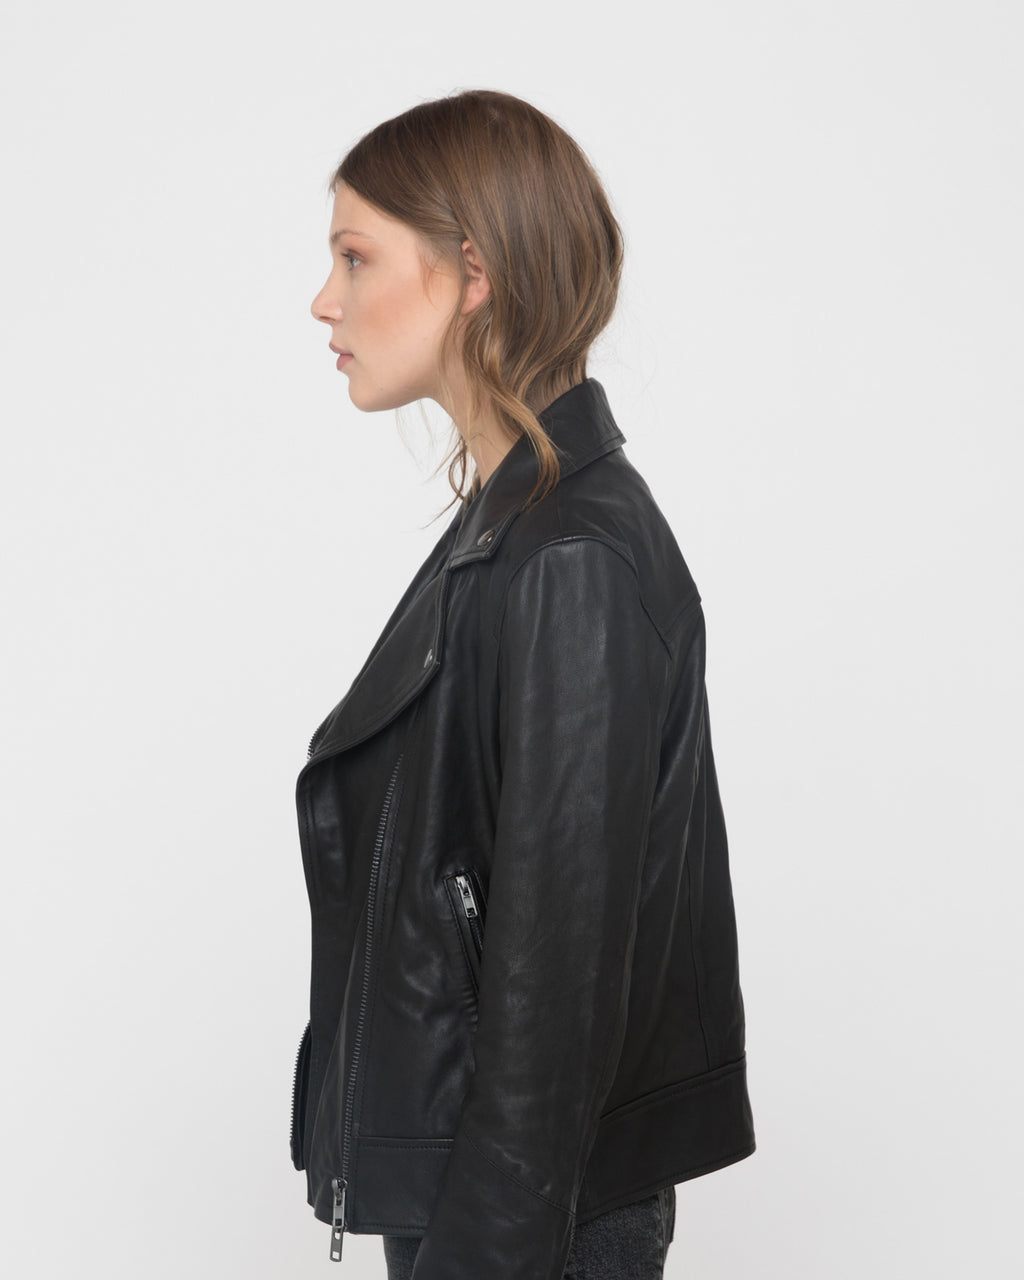 The Flint Jacket in Black